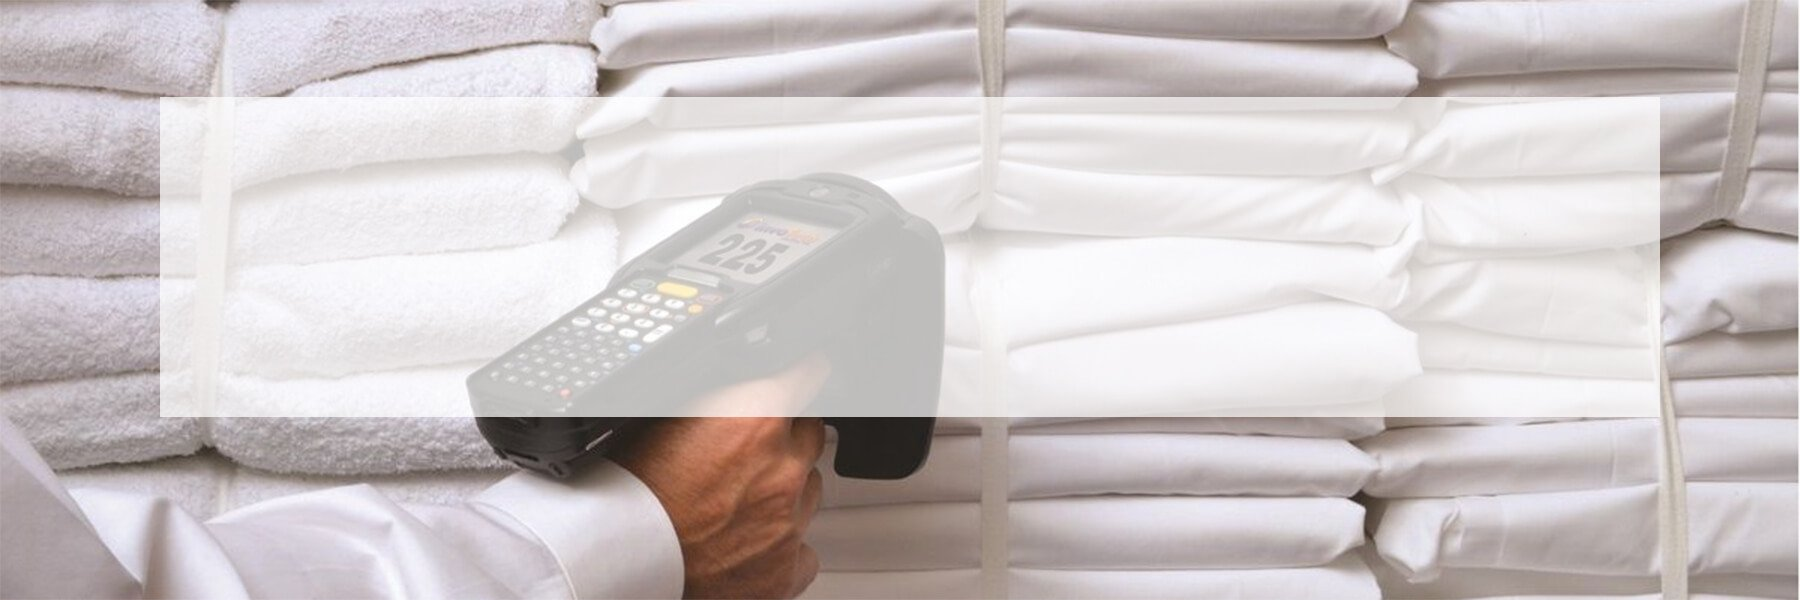 RFID laundry tags banner (1)